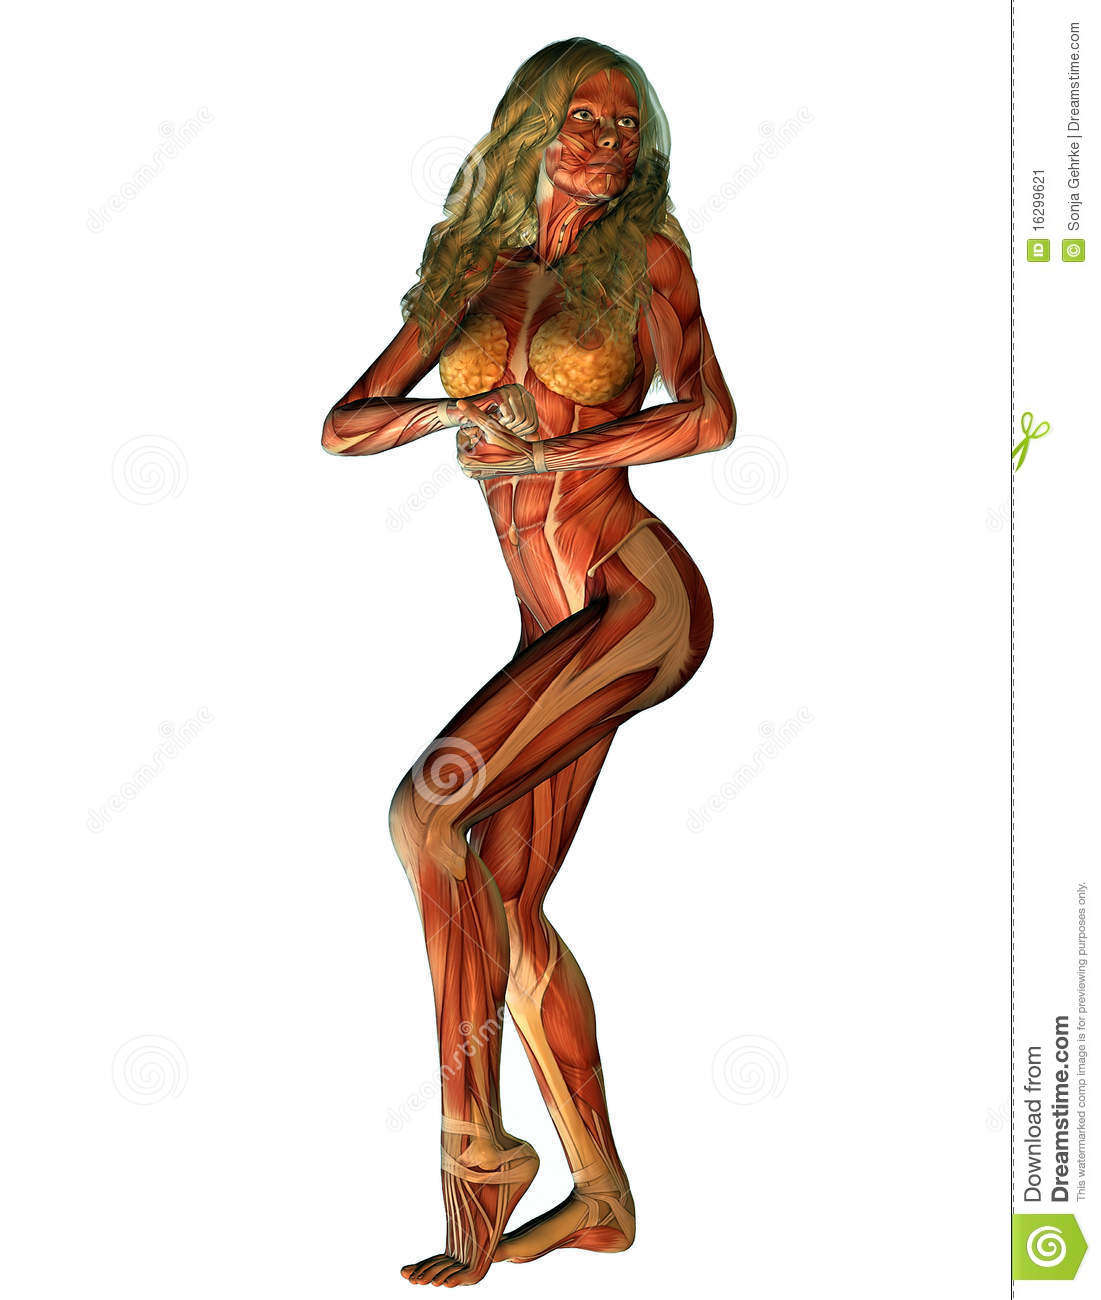 ... female structure of muscle in strength pose than illustration